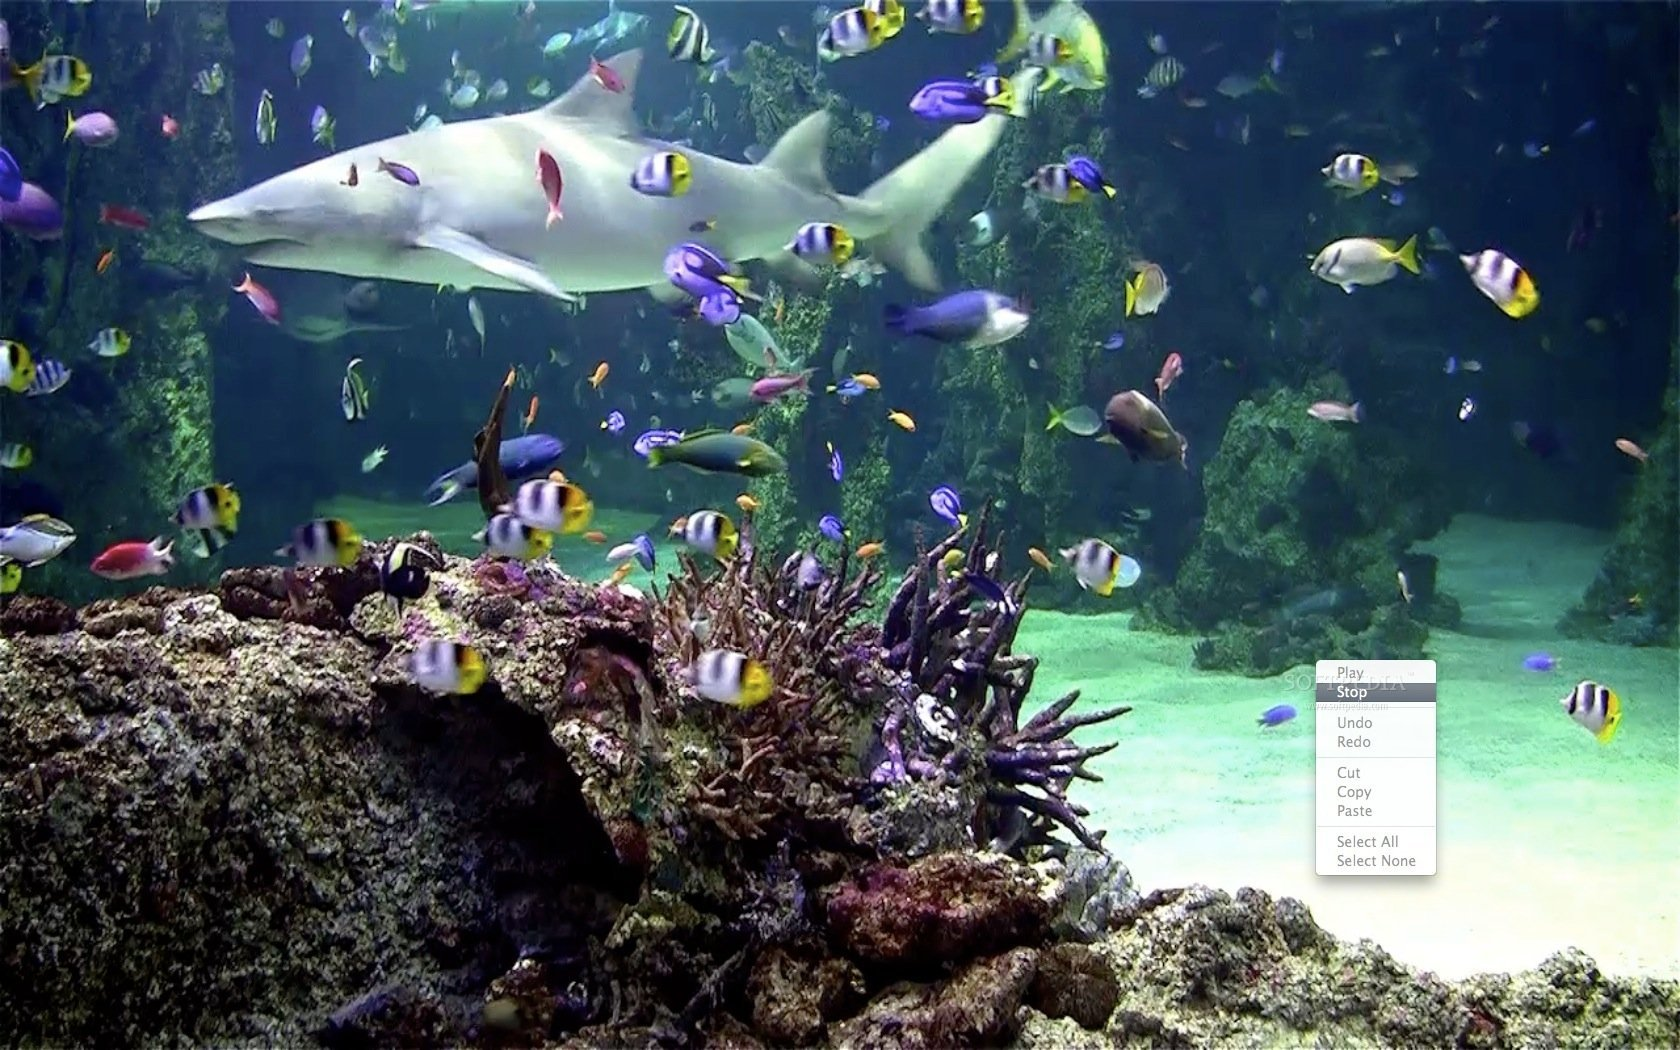 Live Aquarium Wallpaper Windows 7 Wallpapersafari